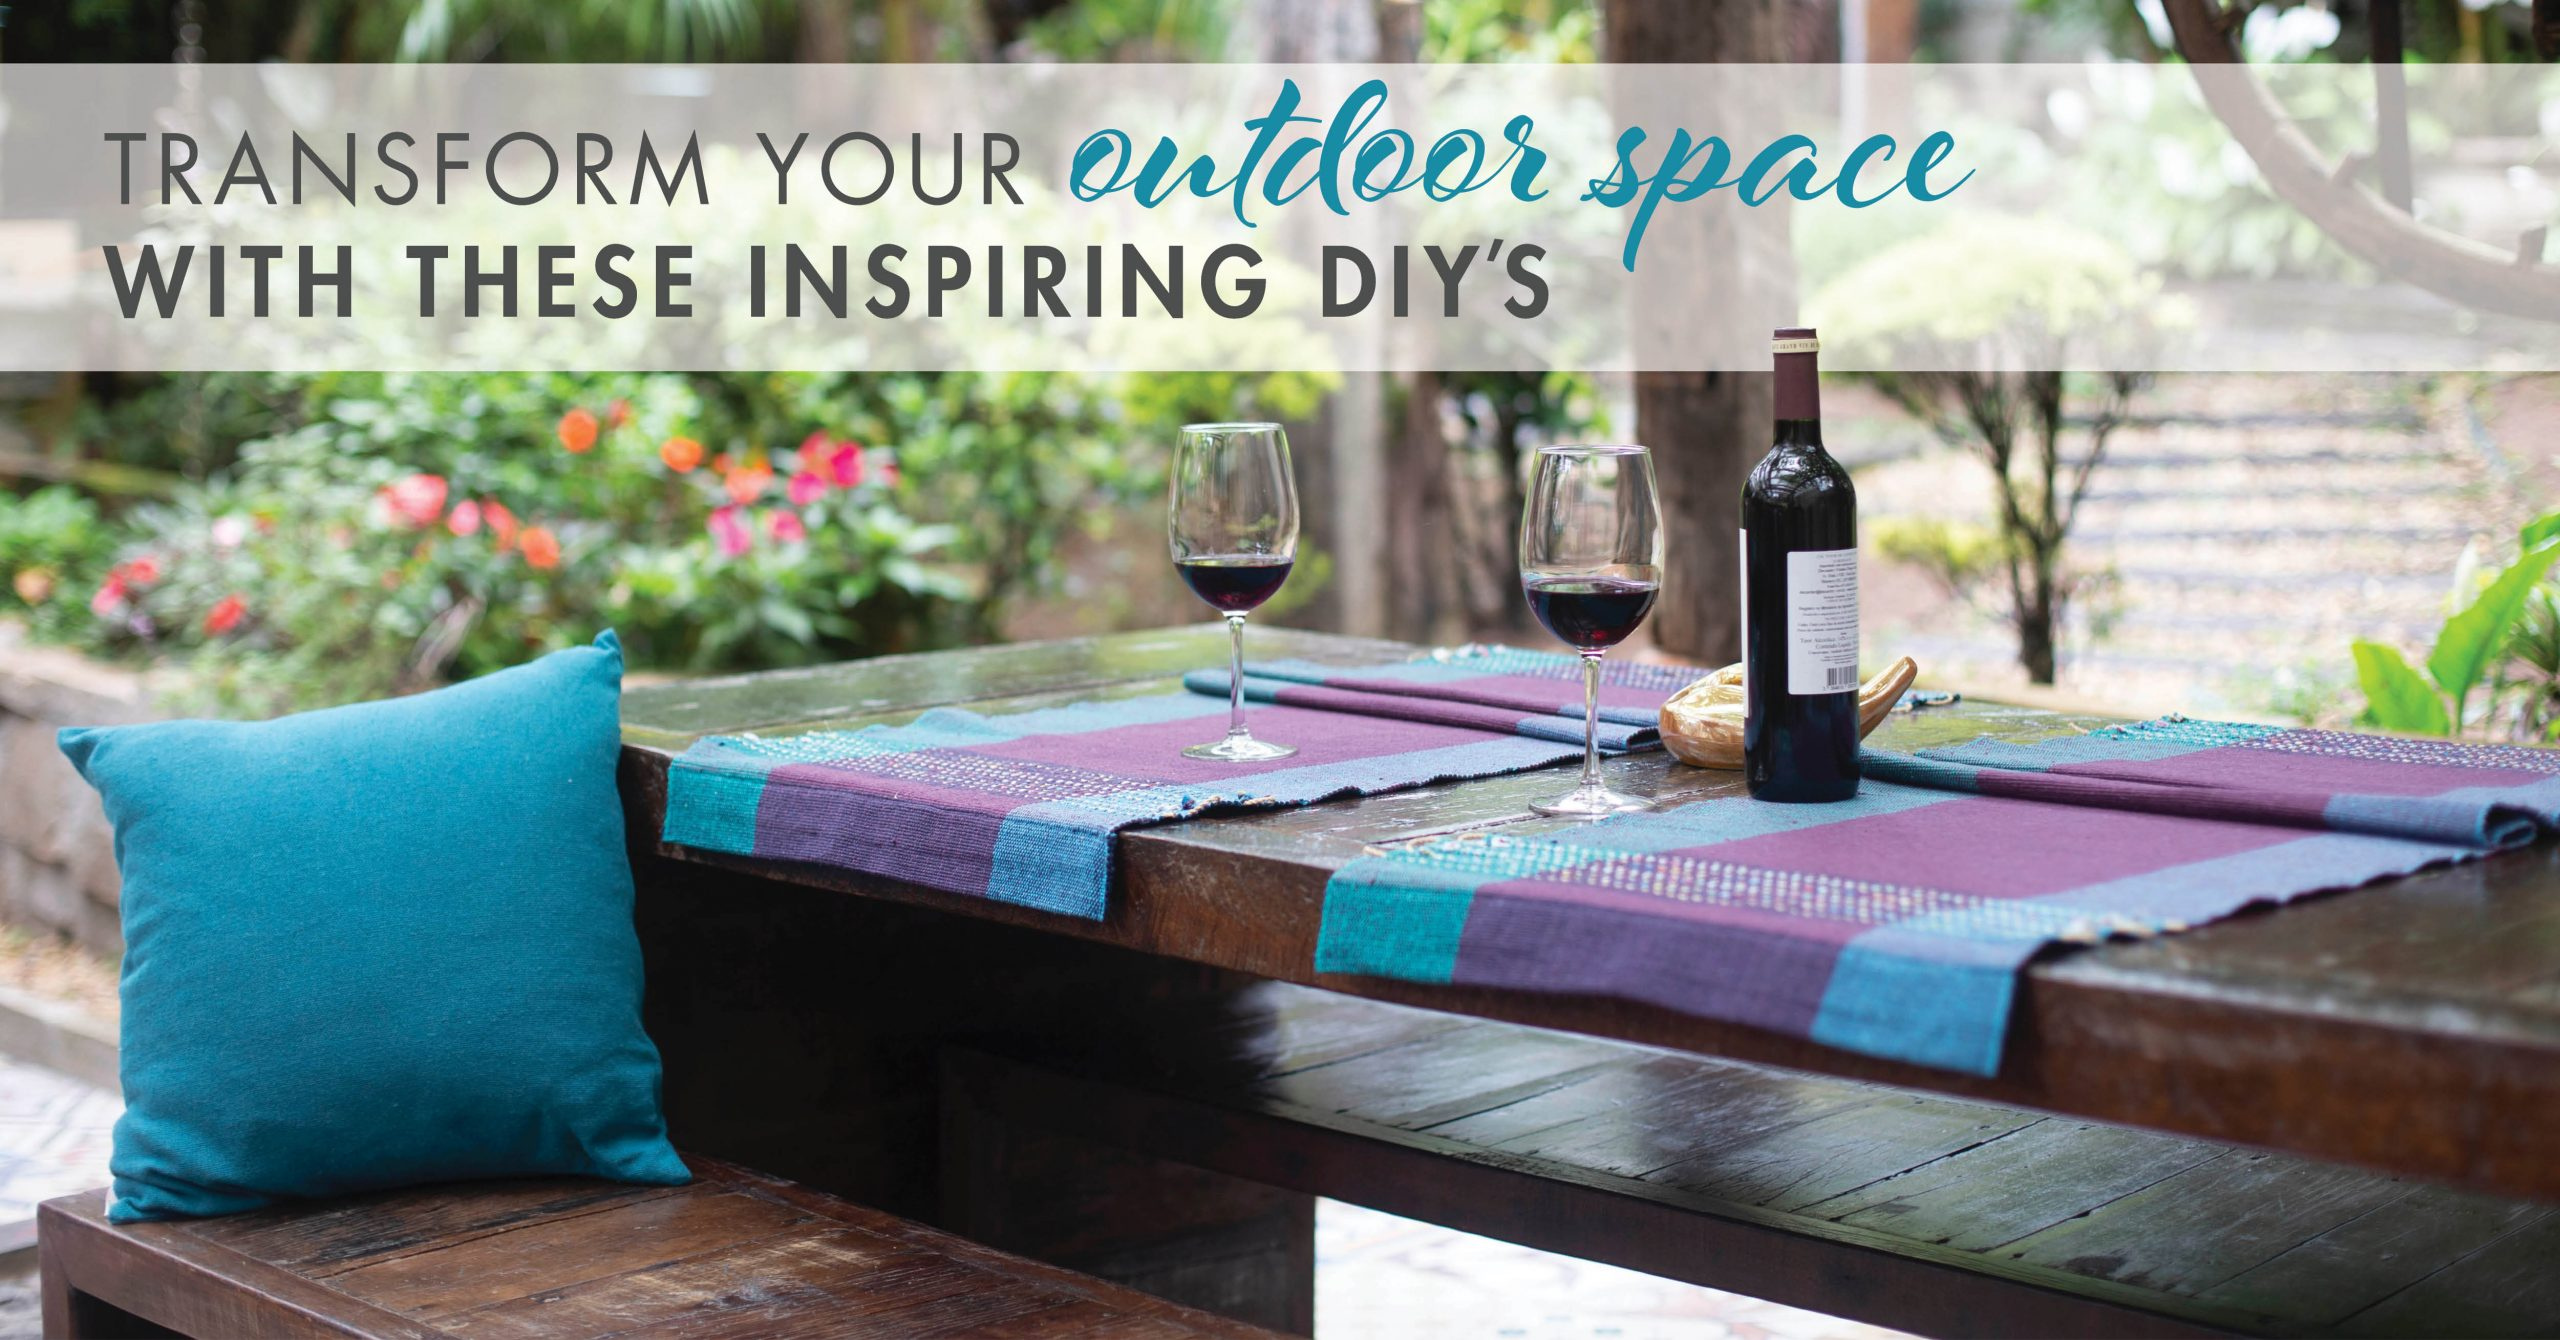 Transform Your Outdoor Space With These Inspiring DIY's